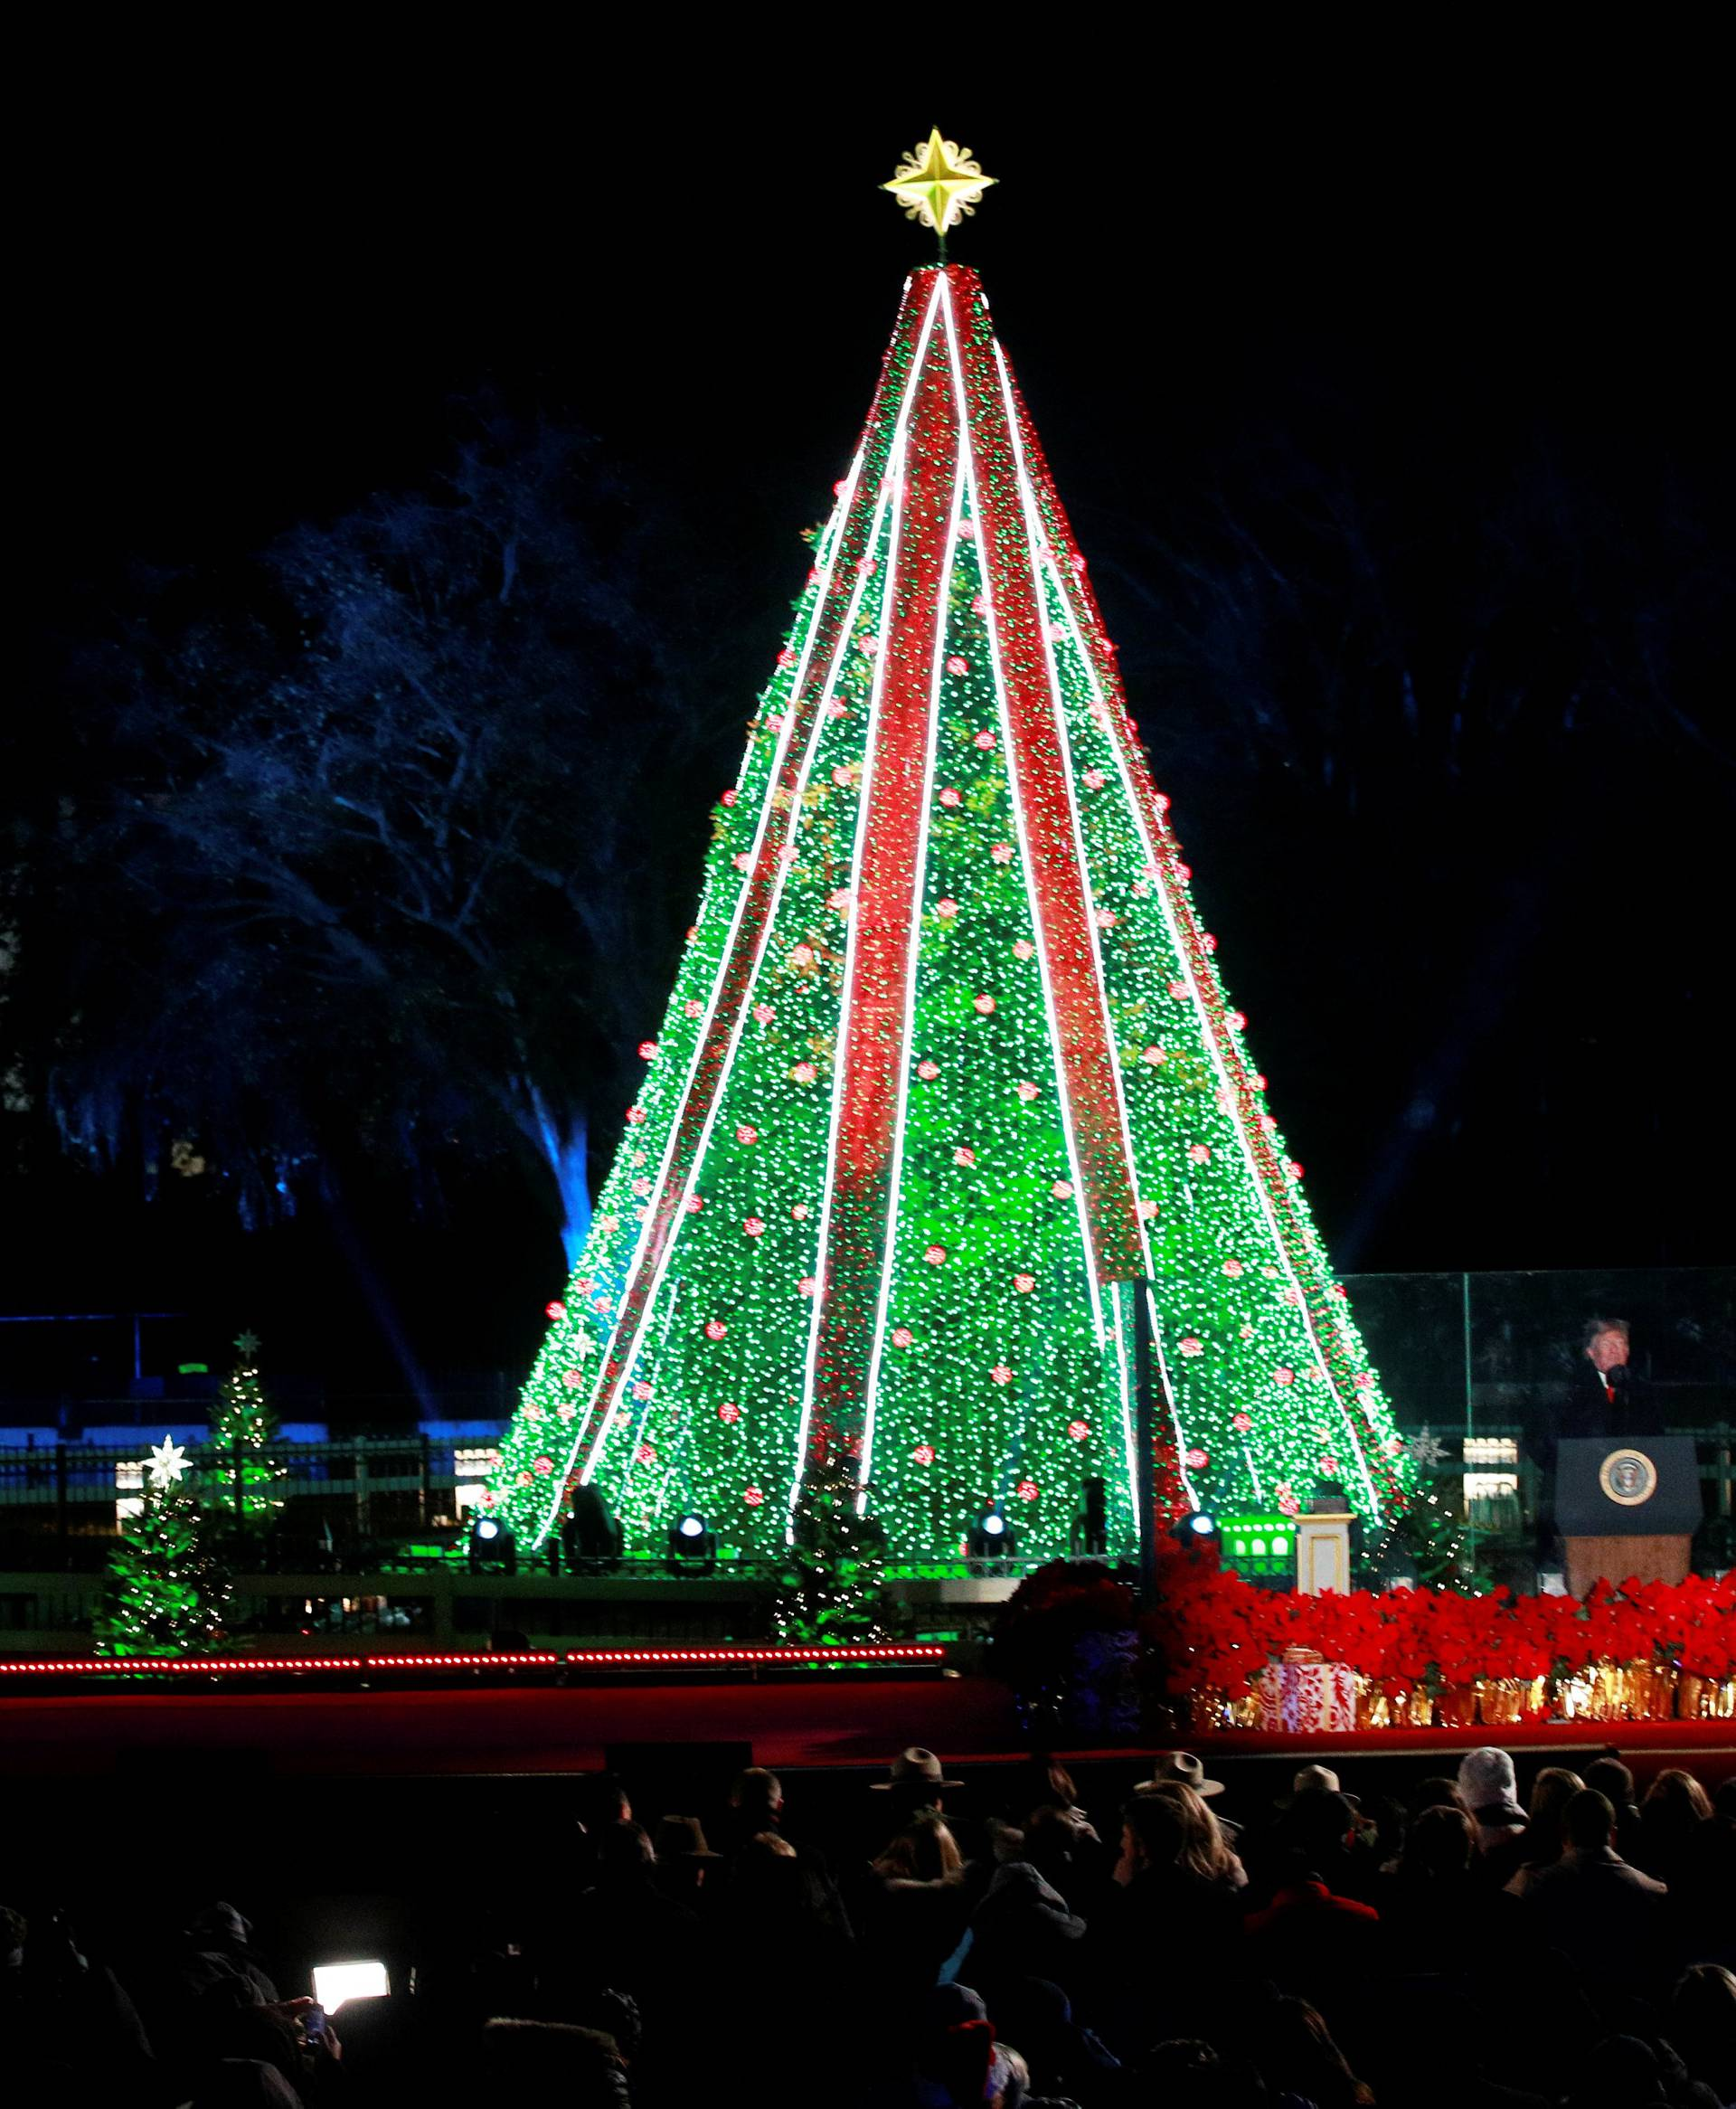 U.S. President Donald Trump and Mrs. Trump participate in 96th annual National Christmas Tree Lighting ceremony in Washington